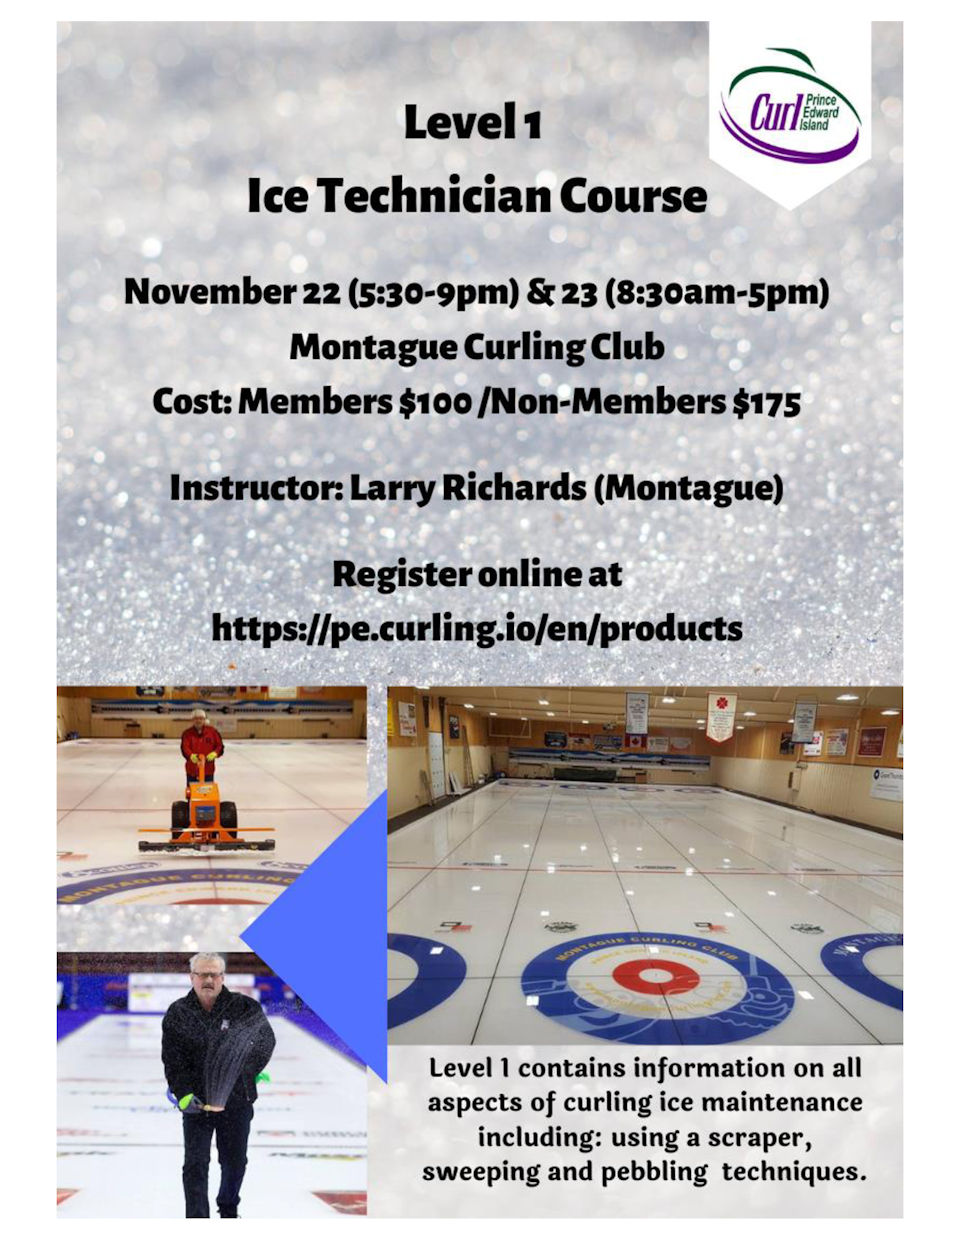 Level 1 Ice Technician Course @ Montague Curling Rink